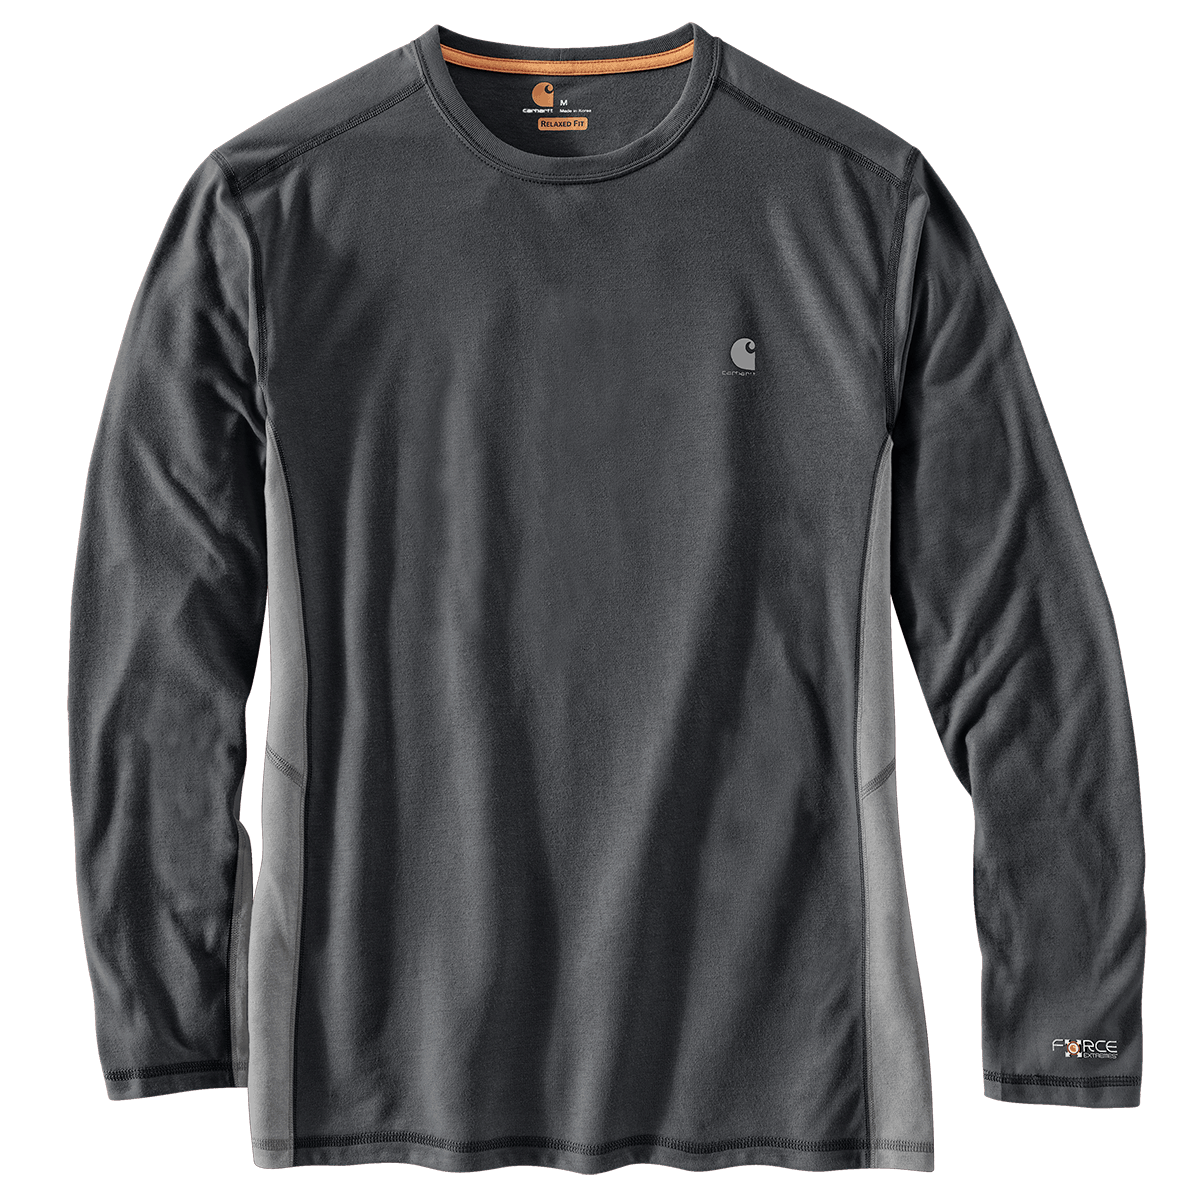 forceextremes_long-sleeve_t-shirt_102264